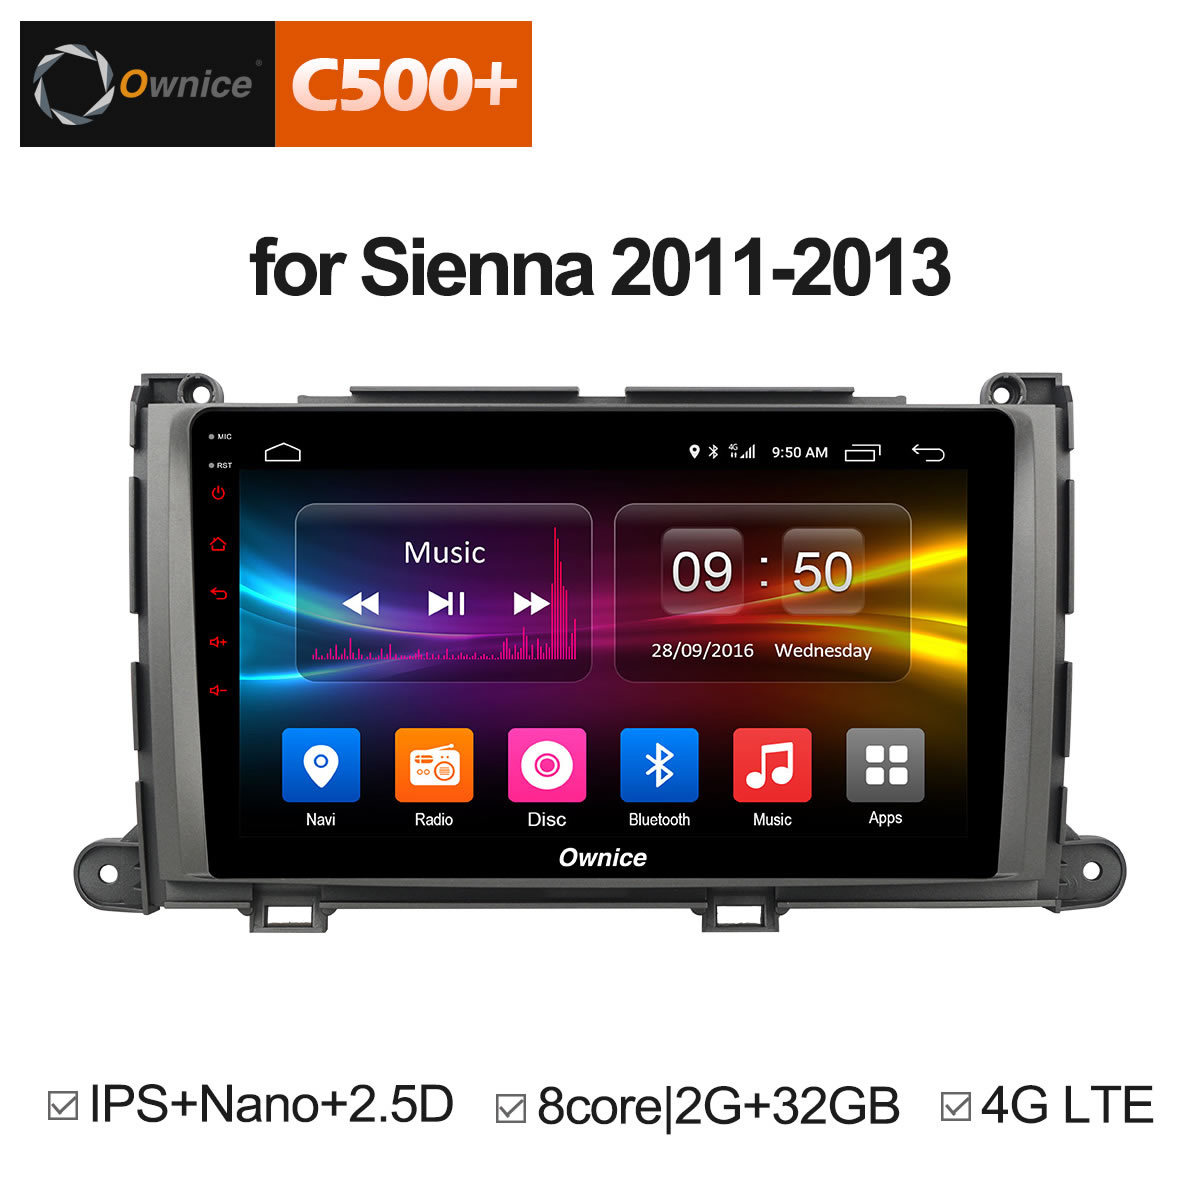 Ownice C500 + G10 9 pouces headunit voiture PC Octa Core Android 8.1 DVD GPS Navigation pour TOYOTA Sienna 2011 2012 2013 4G LTE voiture jouer